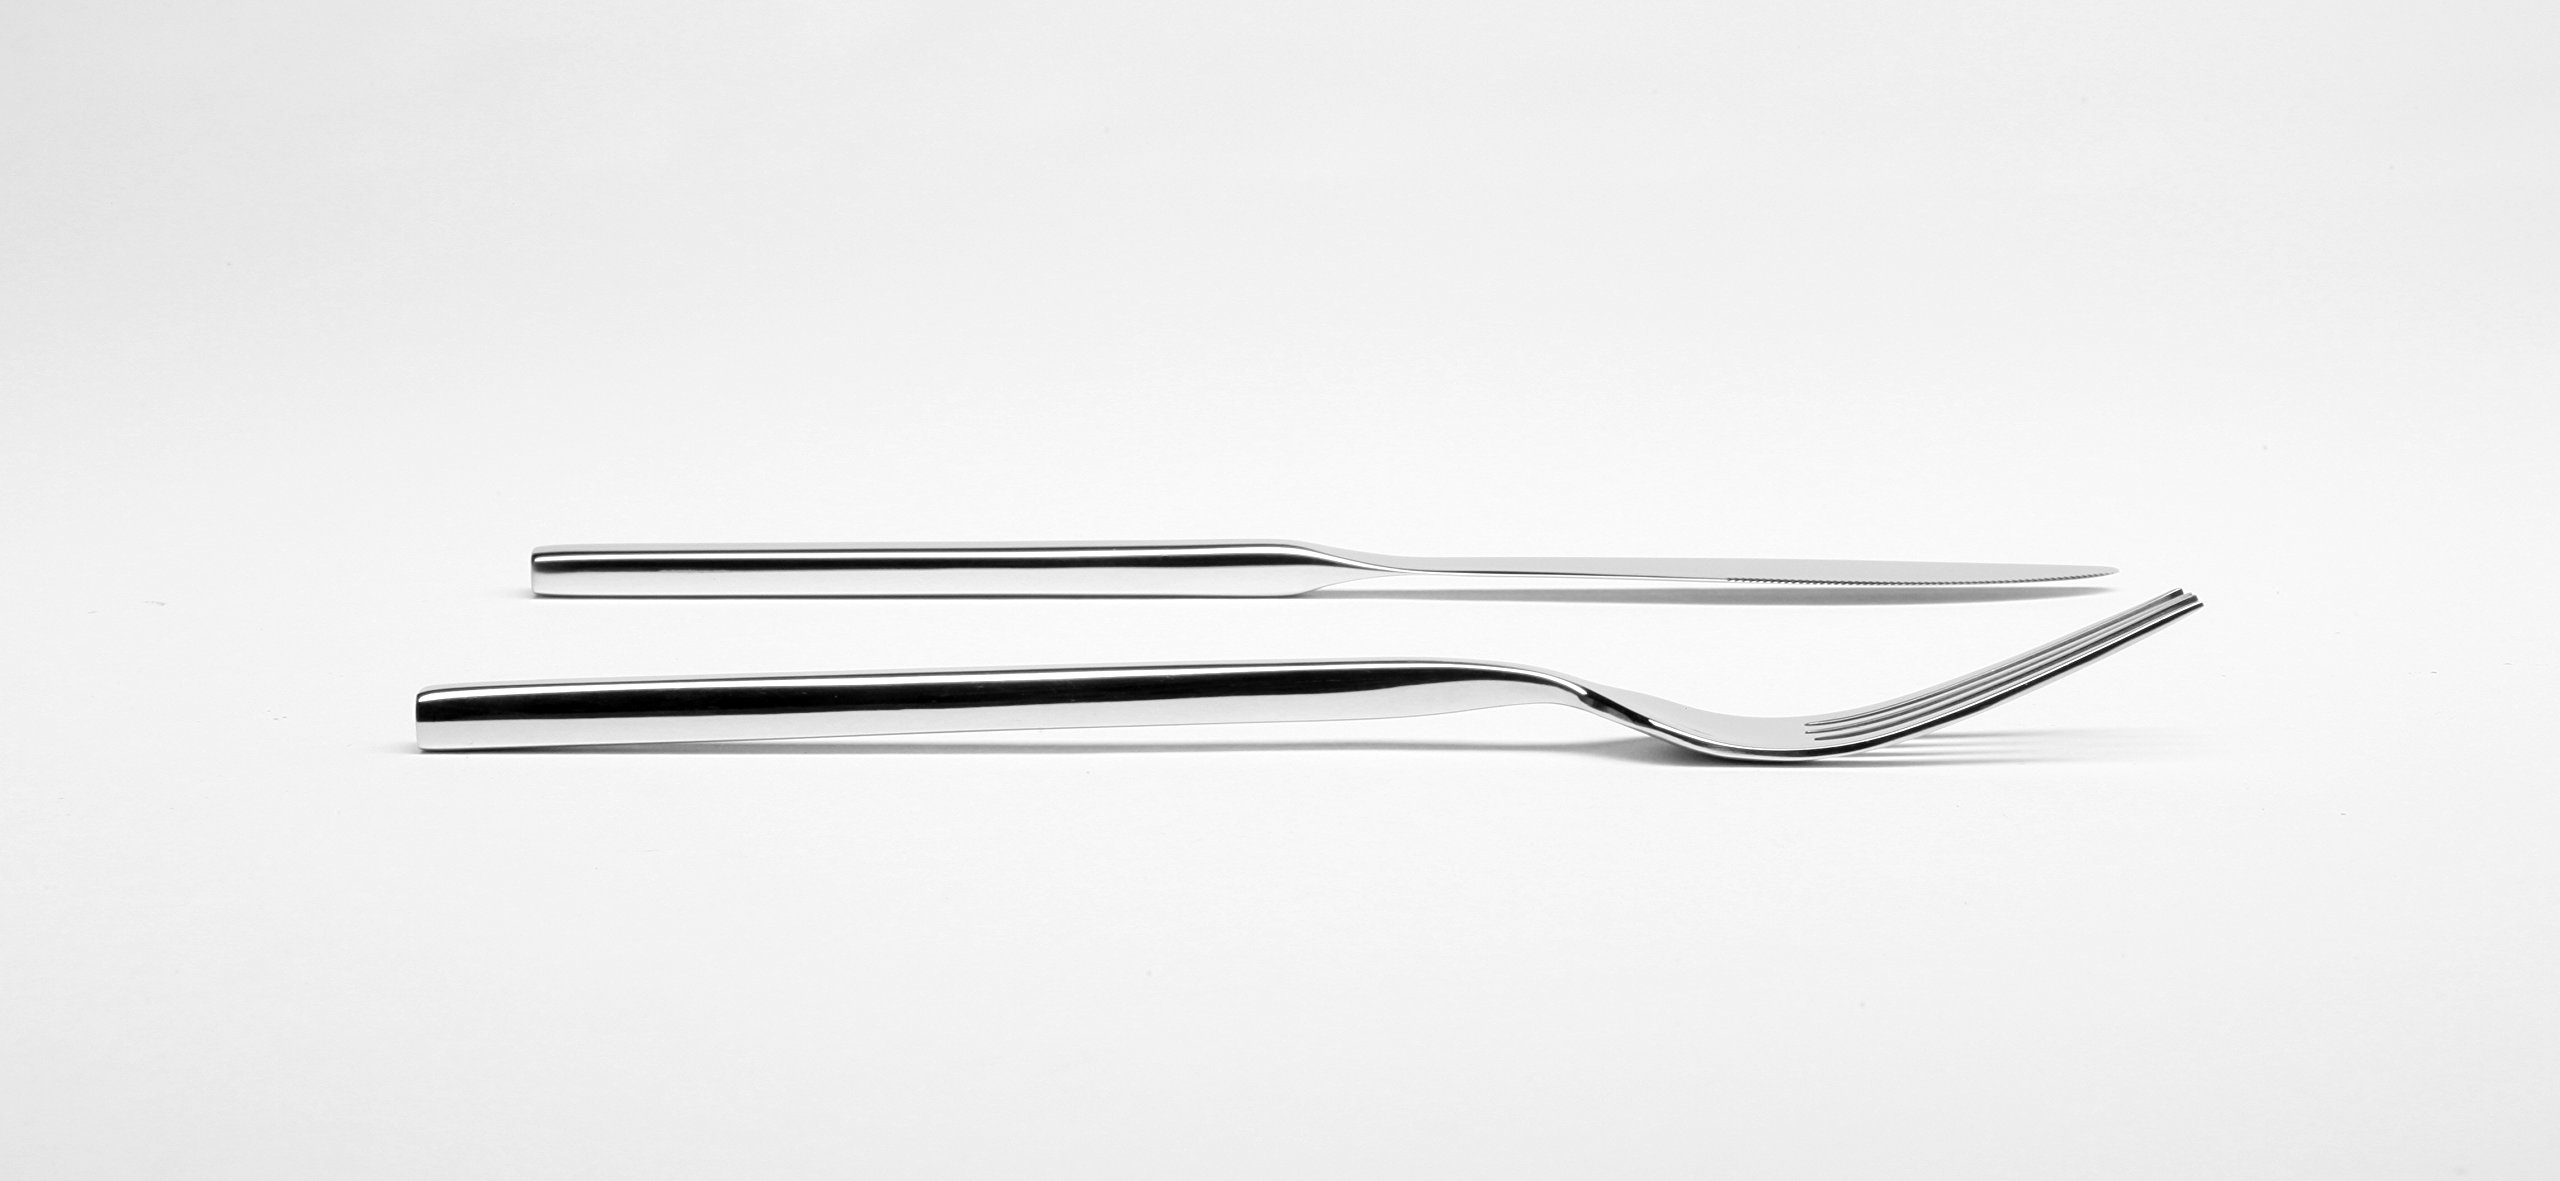 Fortessa Arezzo 18/10 Stainless Steel Flatware, 5 Piece Place Setting, Service for 1, Polished Stainless - 5 piece set includes: Table Fork, Salad/dessert Fork, Table knife, dessert/Soup Spoon, Coffee/ tea Spoon; features heft, Weight and balance in hand 18/10 stainless steel: greater resistance to stains and rust, superior shine; polished handles, edges and Fork tines for long wearing use Arezzo pattern: square handles and stylishly modern profile; bold statement for everyday, special occasions; full size, bold Weight - kitchen-tabletop, kitchen-dining-room, flatware - 71TTsttWSWL -